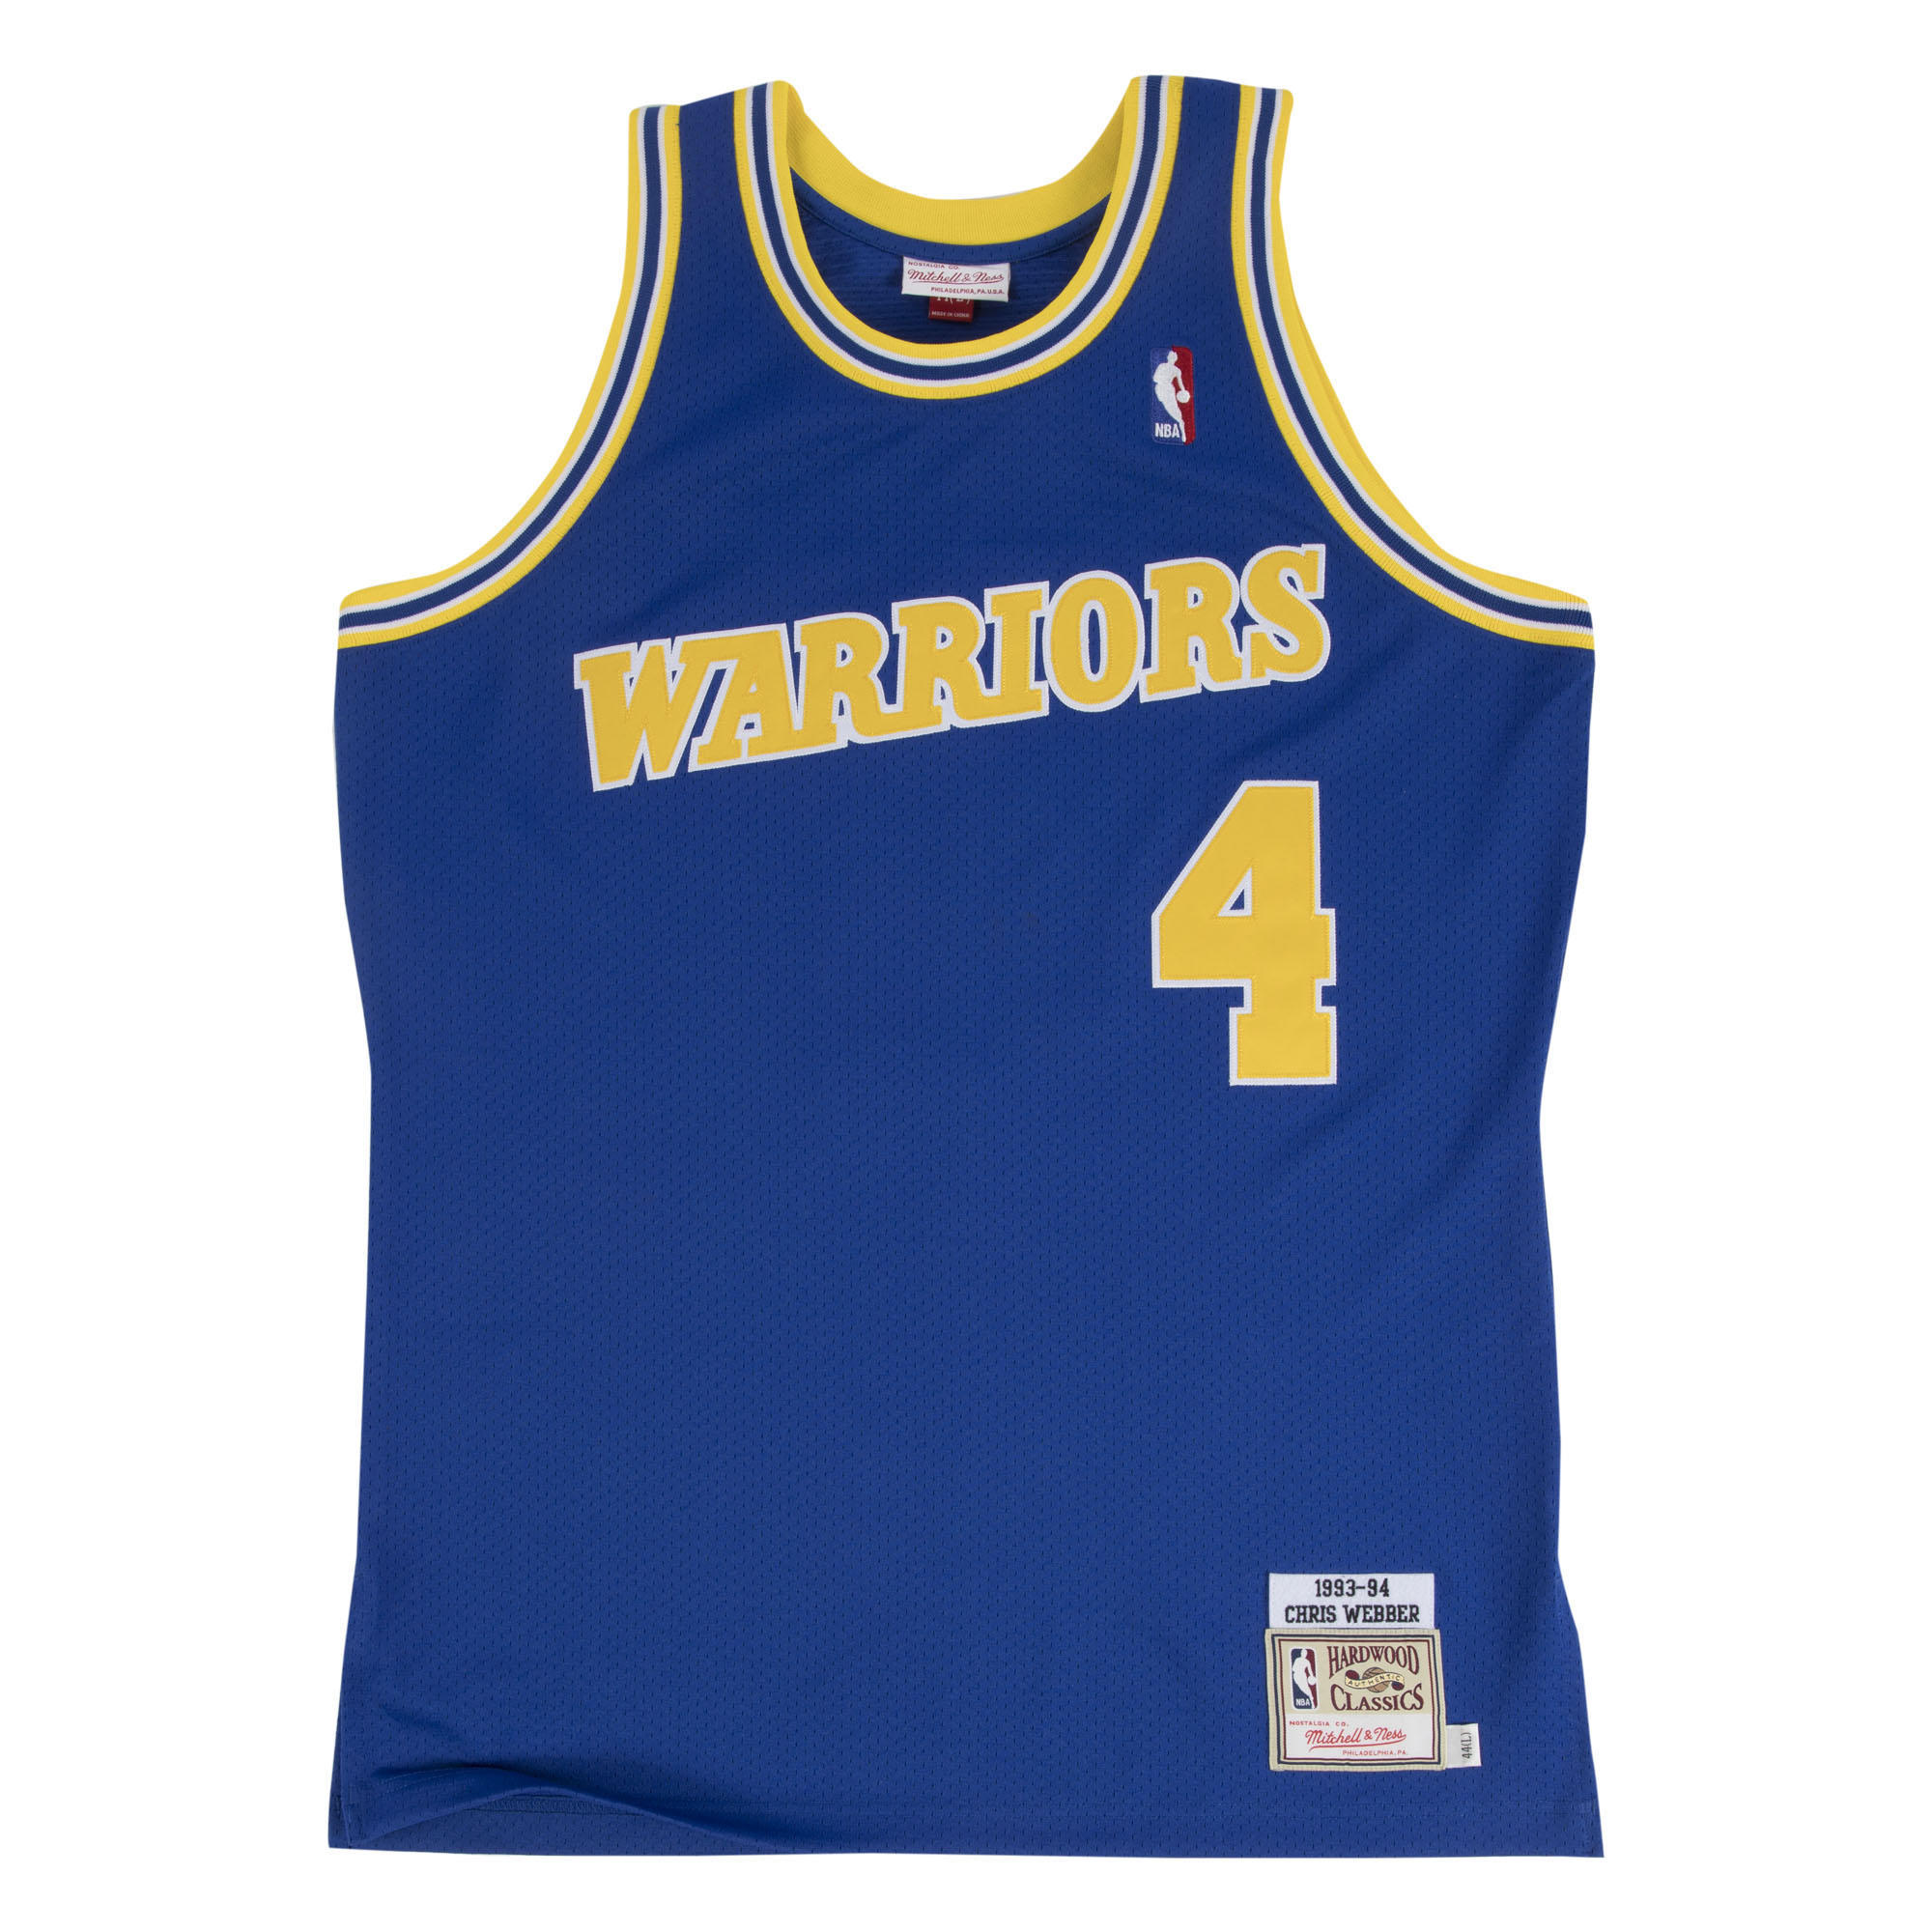 hot sale online 36f4c 76389 Mitchell & Ness Nostalgia Co. | Chris Webber 1993-94 ...